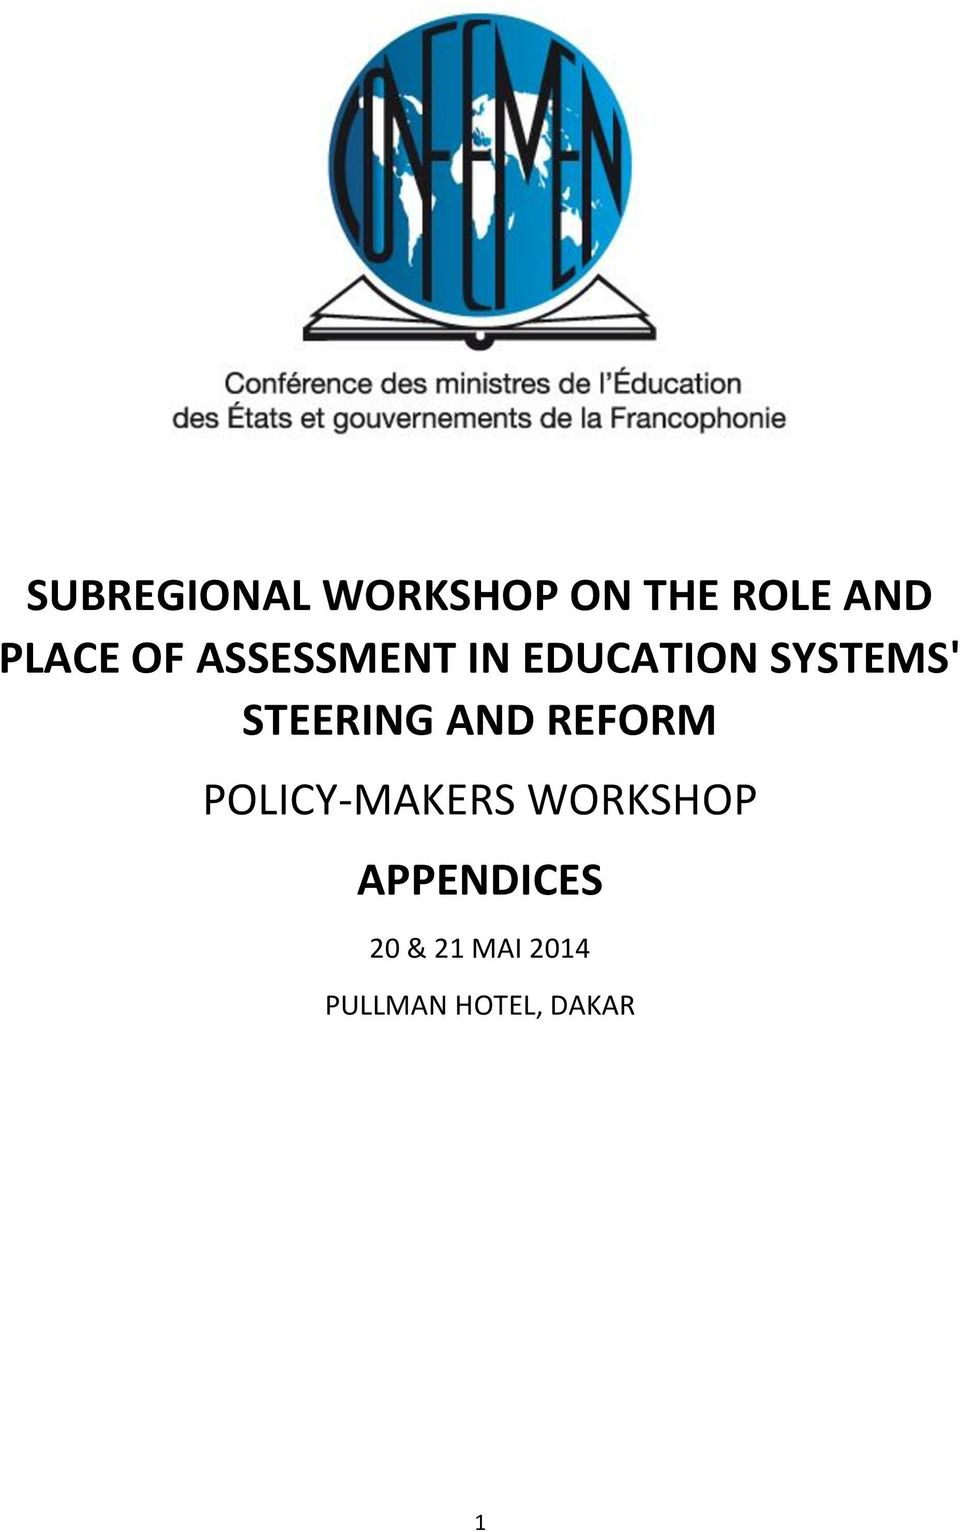 STEERING AND REFORM POLICY-MAKERS WORKSHOP